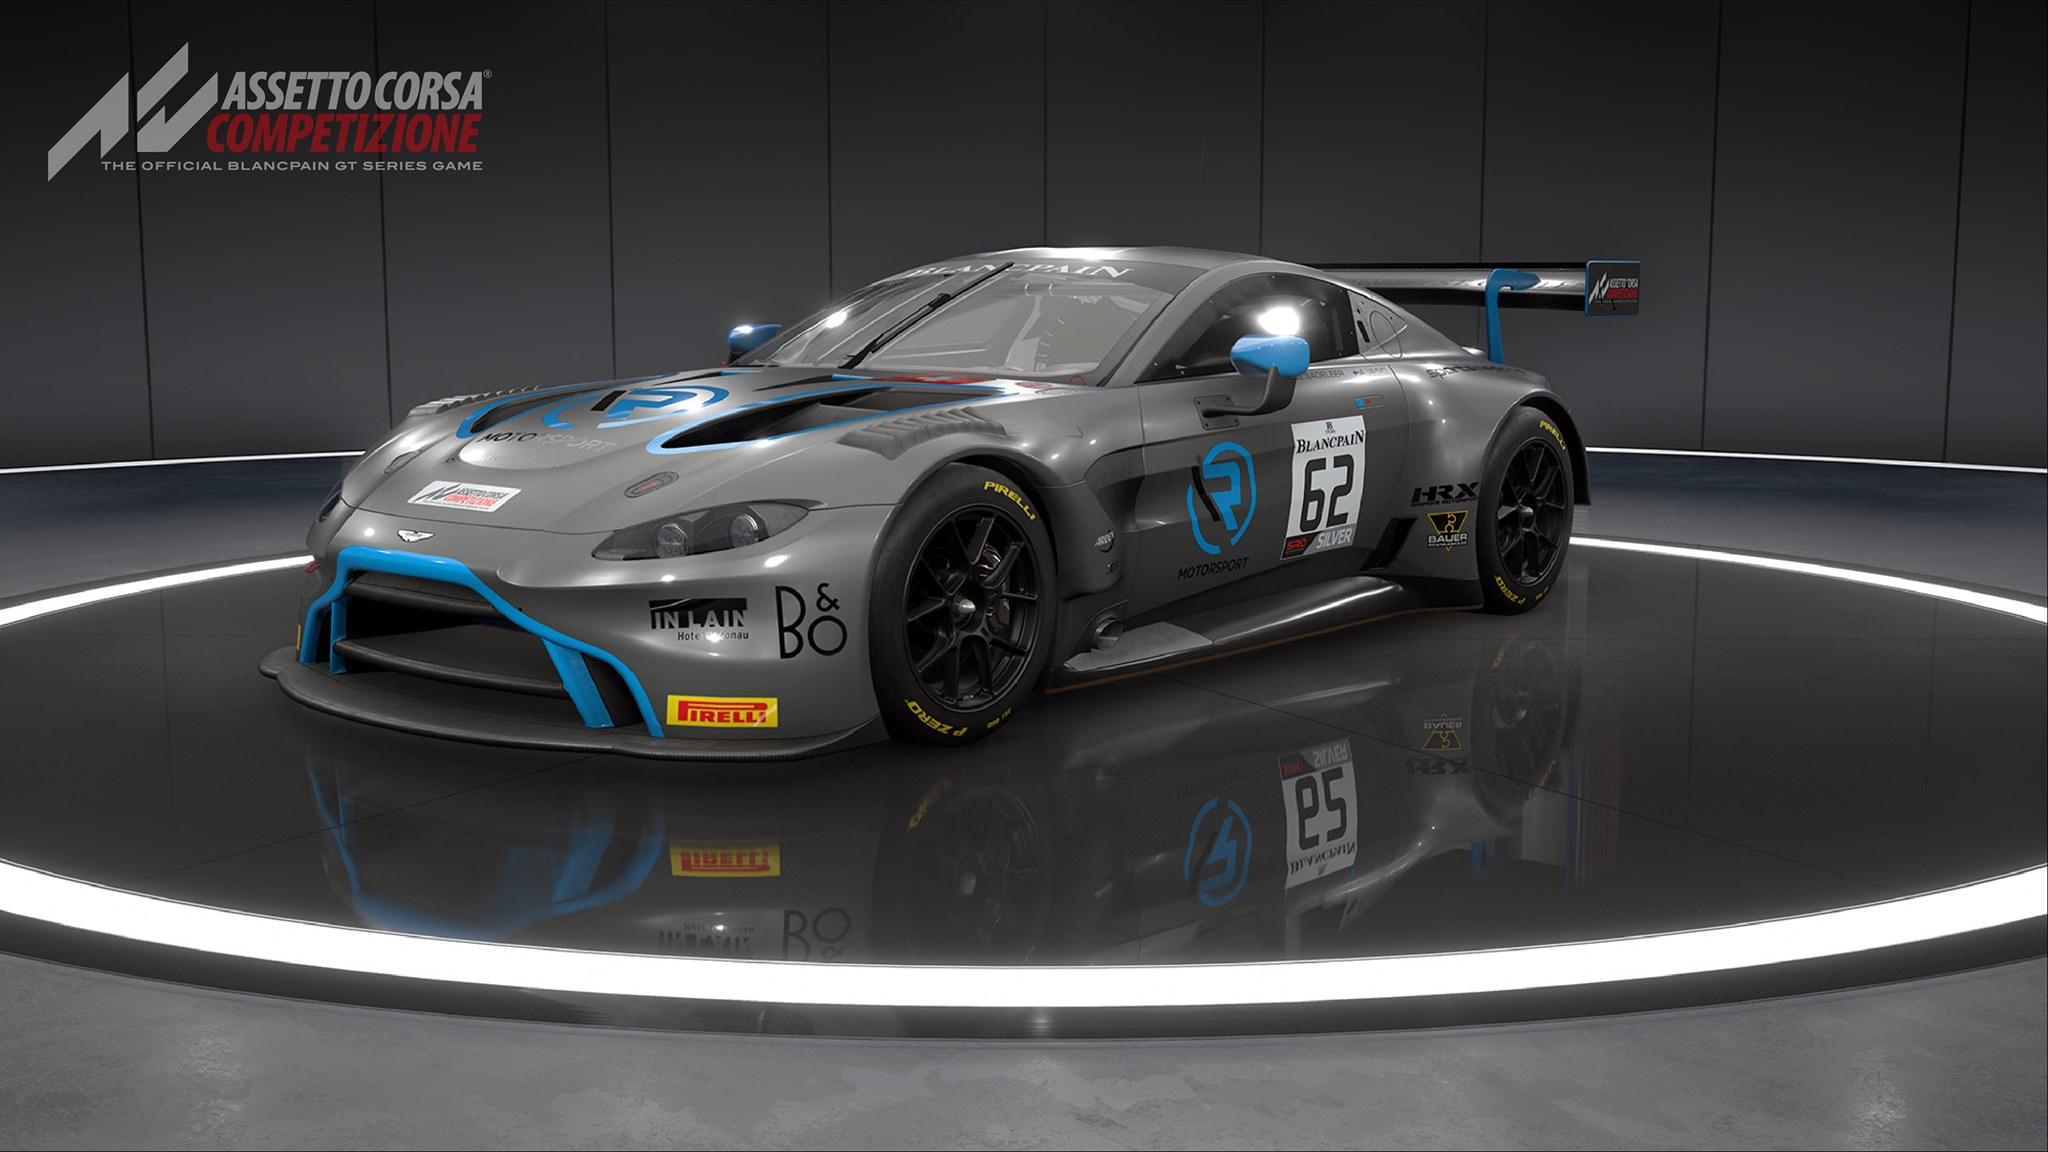 Assetto Corsa Competizione Update And New Content Coming Bsimracing